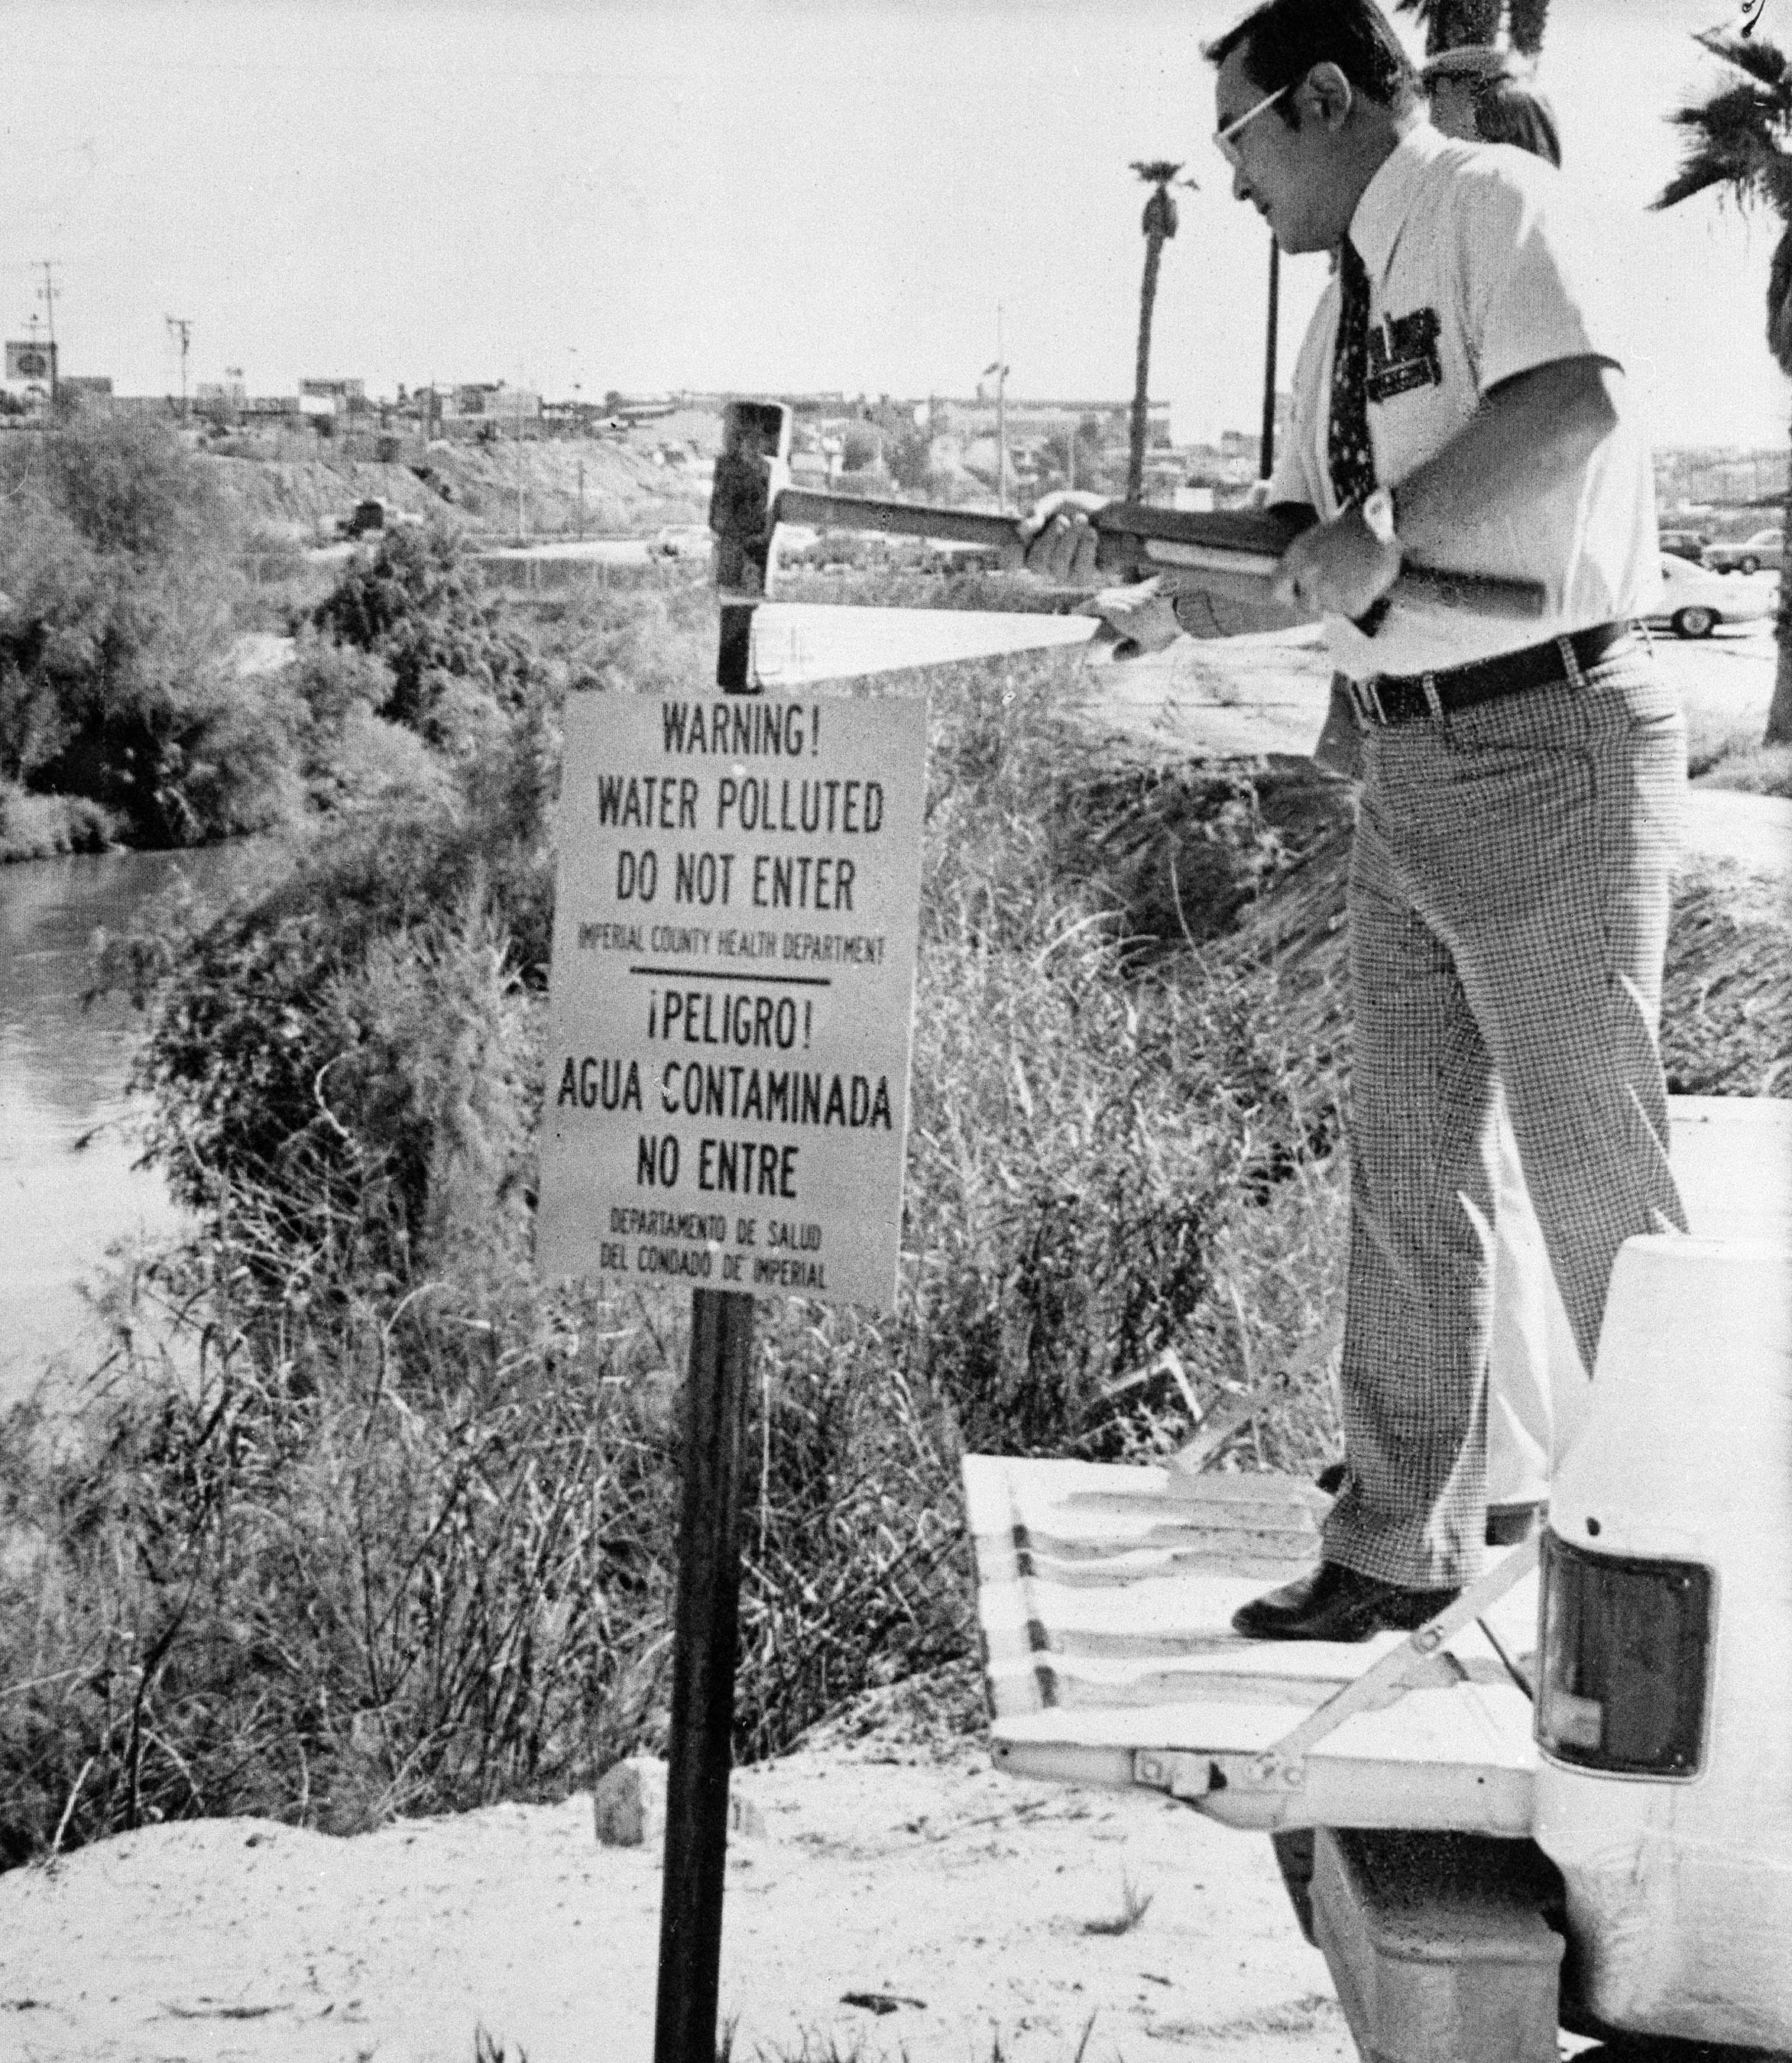 Dr. William Hsu, Imperial County's director of environmental health, erects a sign warning people to stay out of the dangerously polluted New River in Calexico on Nov. 14, 1978.